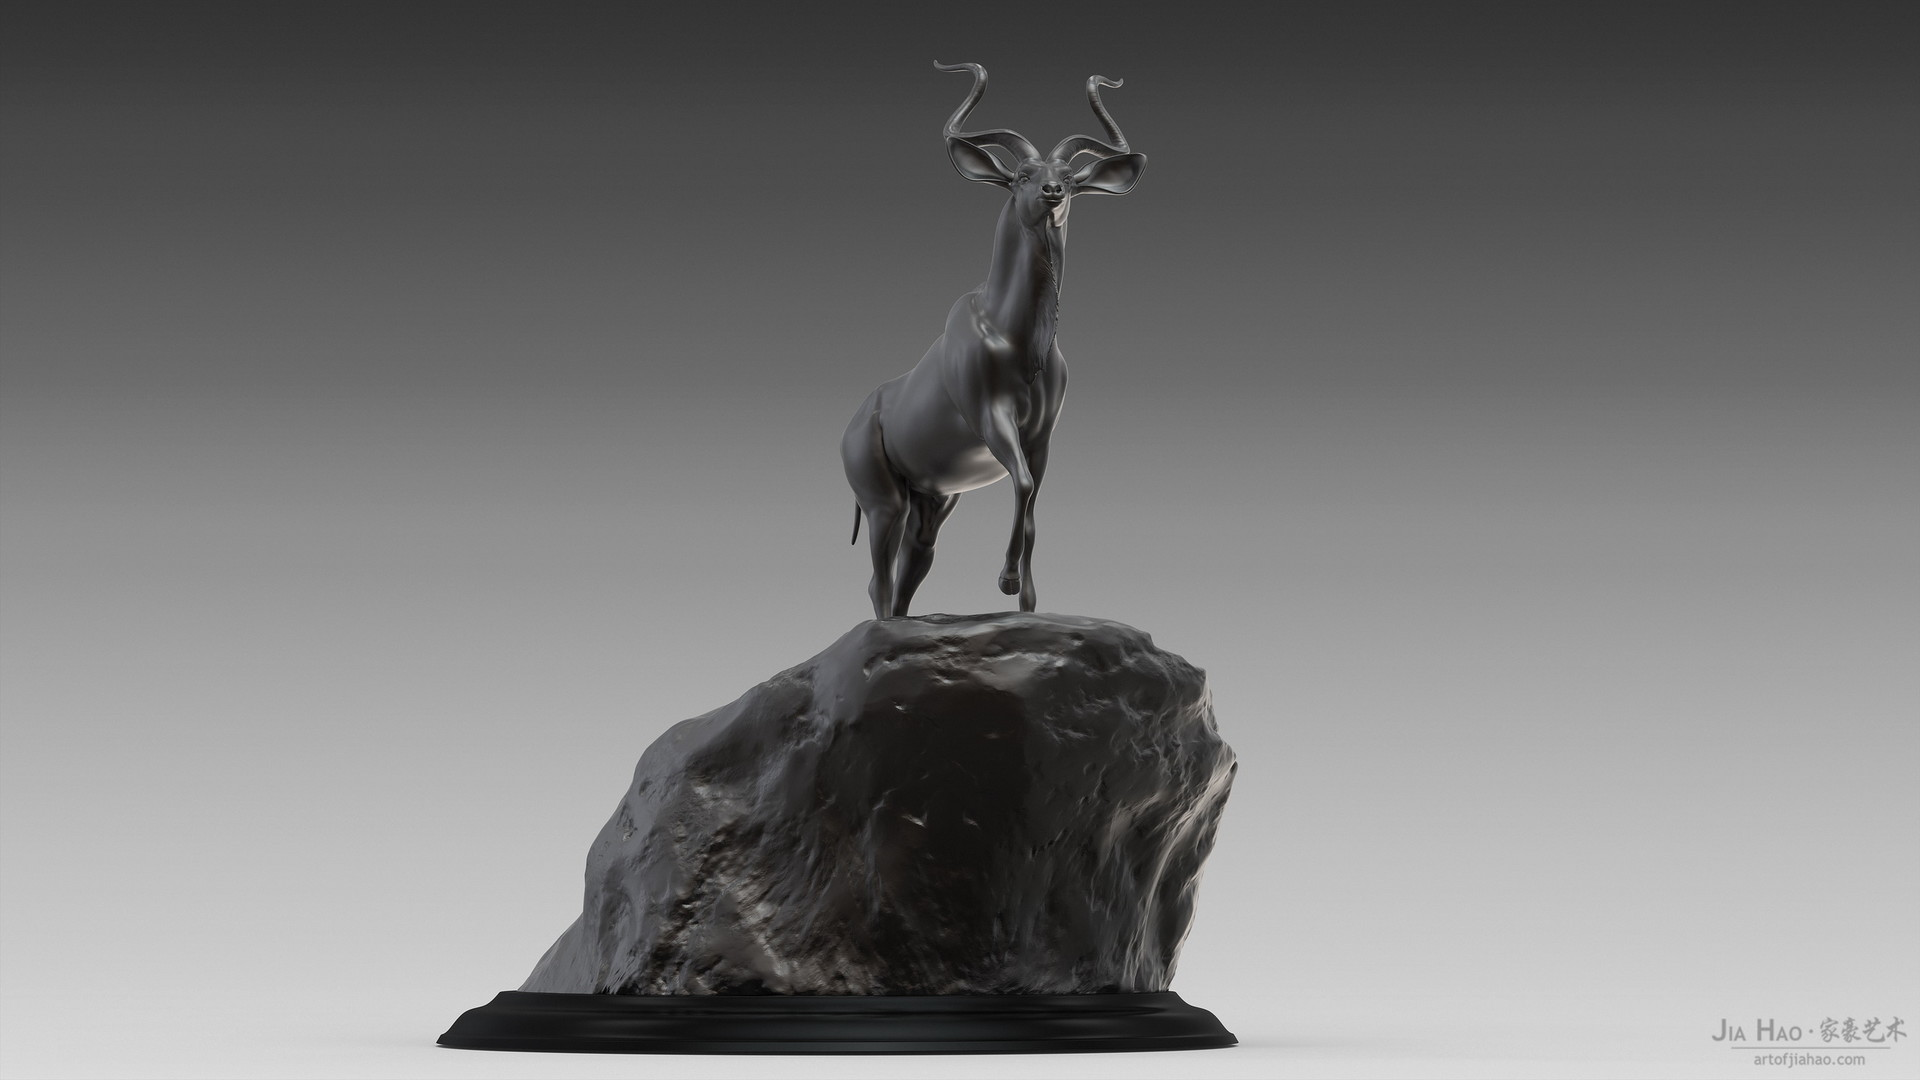 Jia hao greaterkudu digitalsculptureb 02